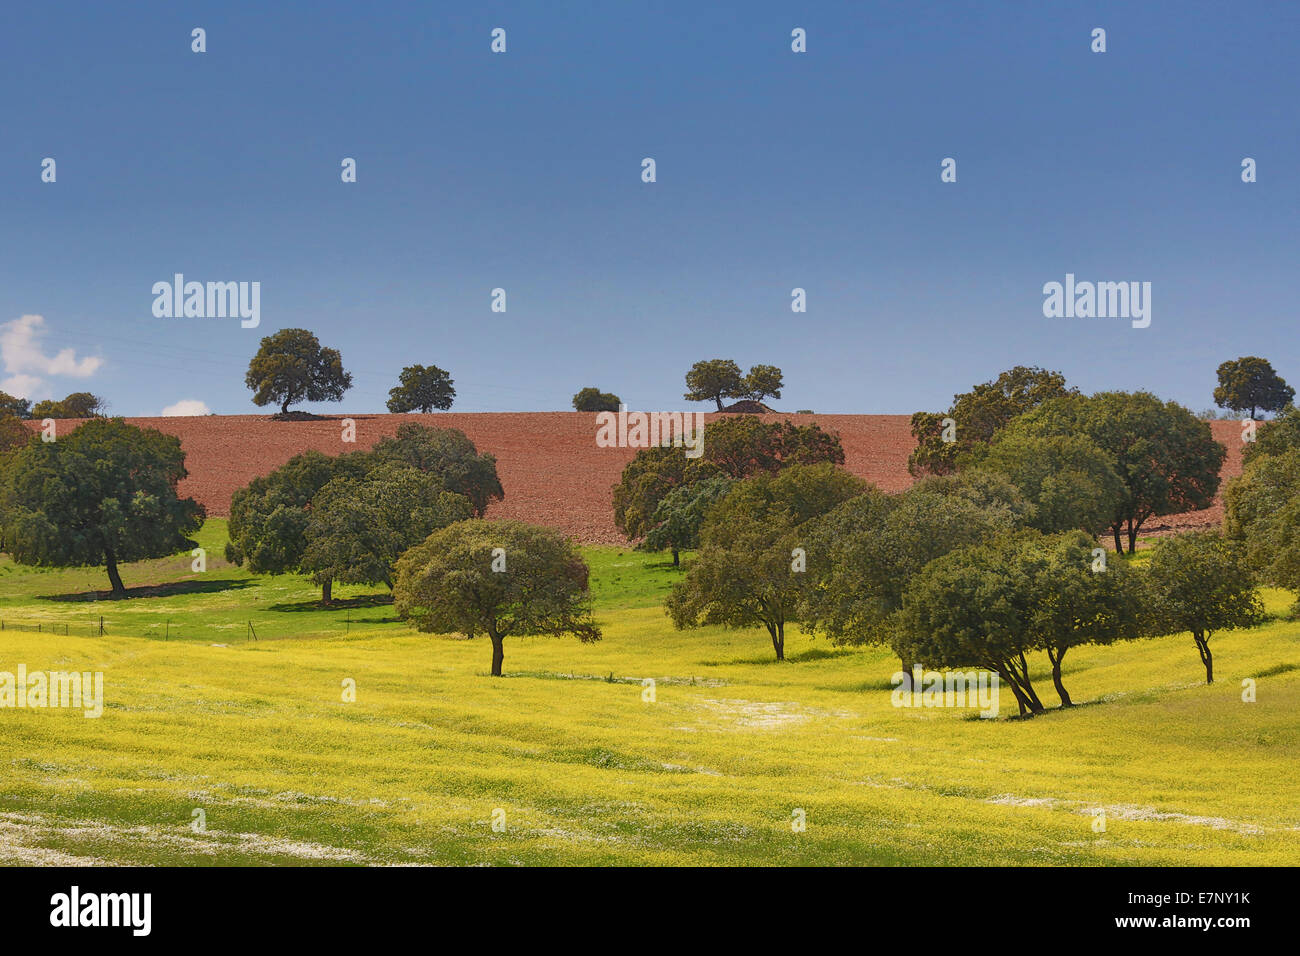 Castile, Ciudad Real, Region, Spain, Europe, colourful, la Mancha, landscape, travel, yellow - Stock Image